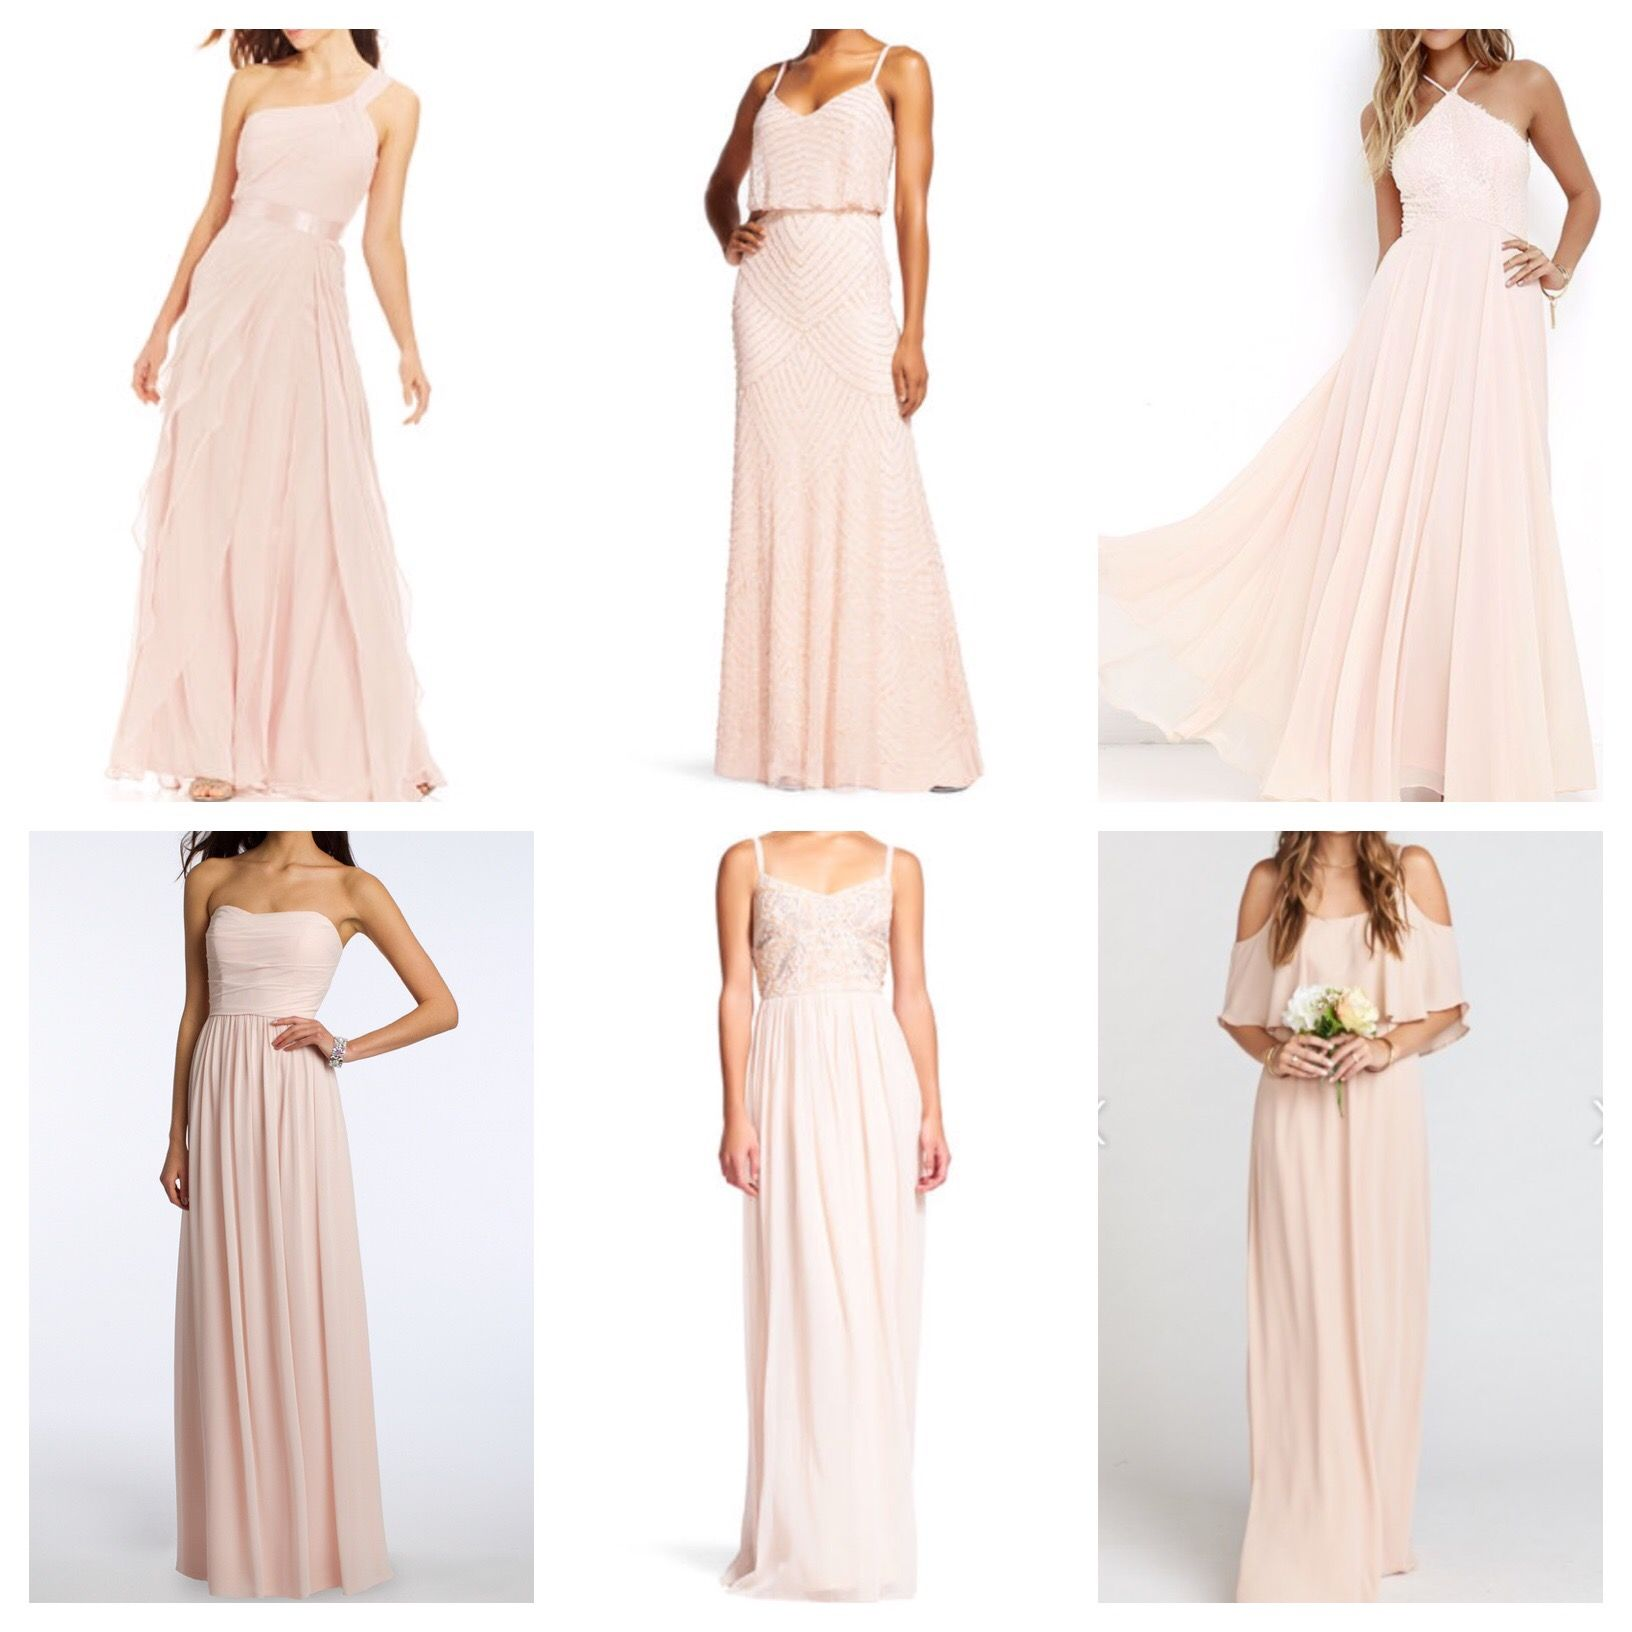 Blush bridesmaids dresses adrianna pappell lulus group usa blush bridesmaids dresses adrianna pappell lulus group usa show me your mumu ombrellifo Images